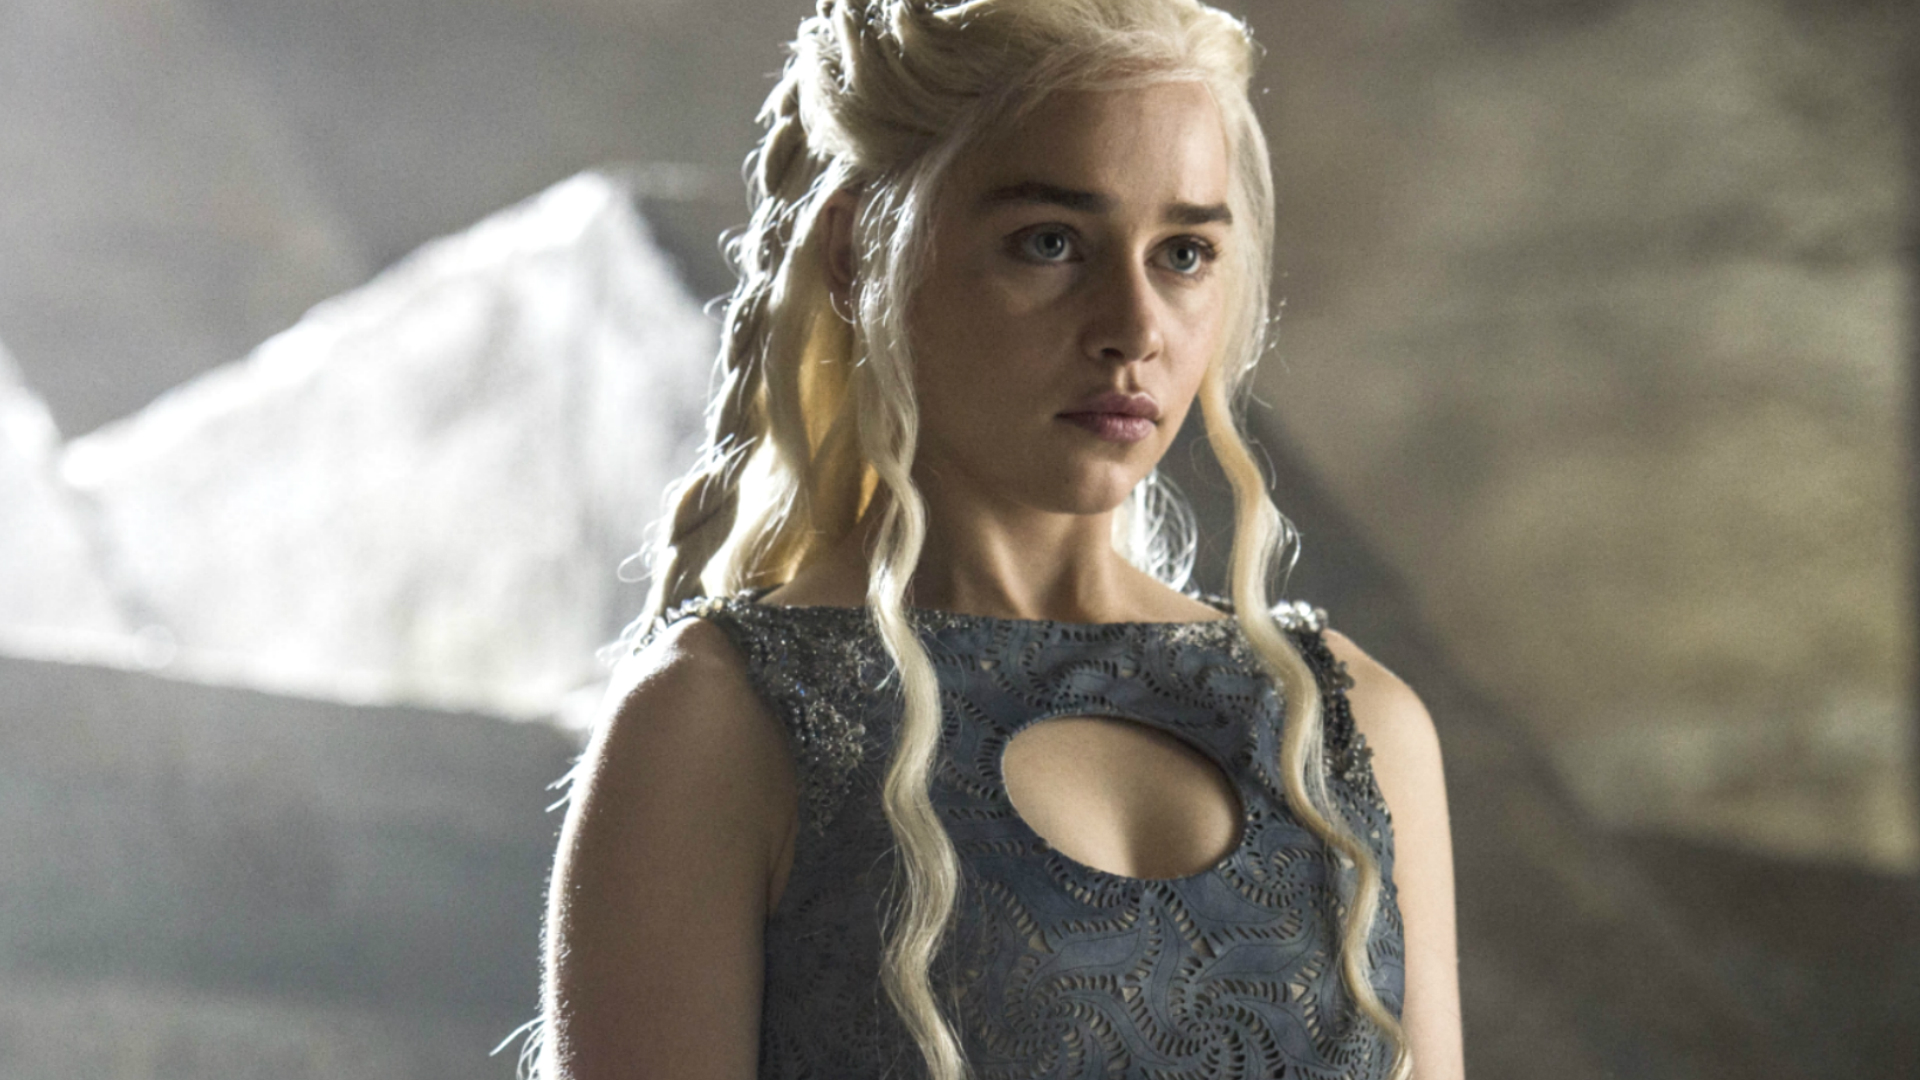 Emilia Clarke in Geme Of Thrones